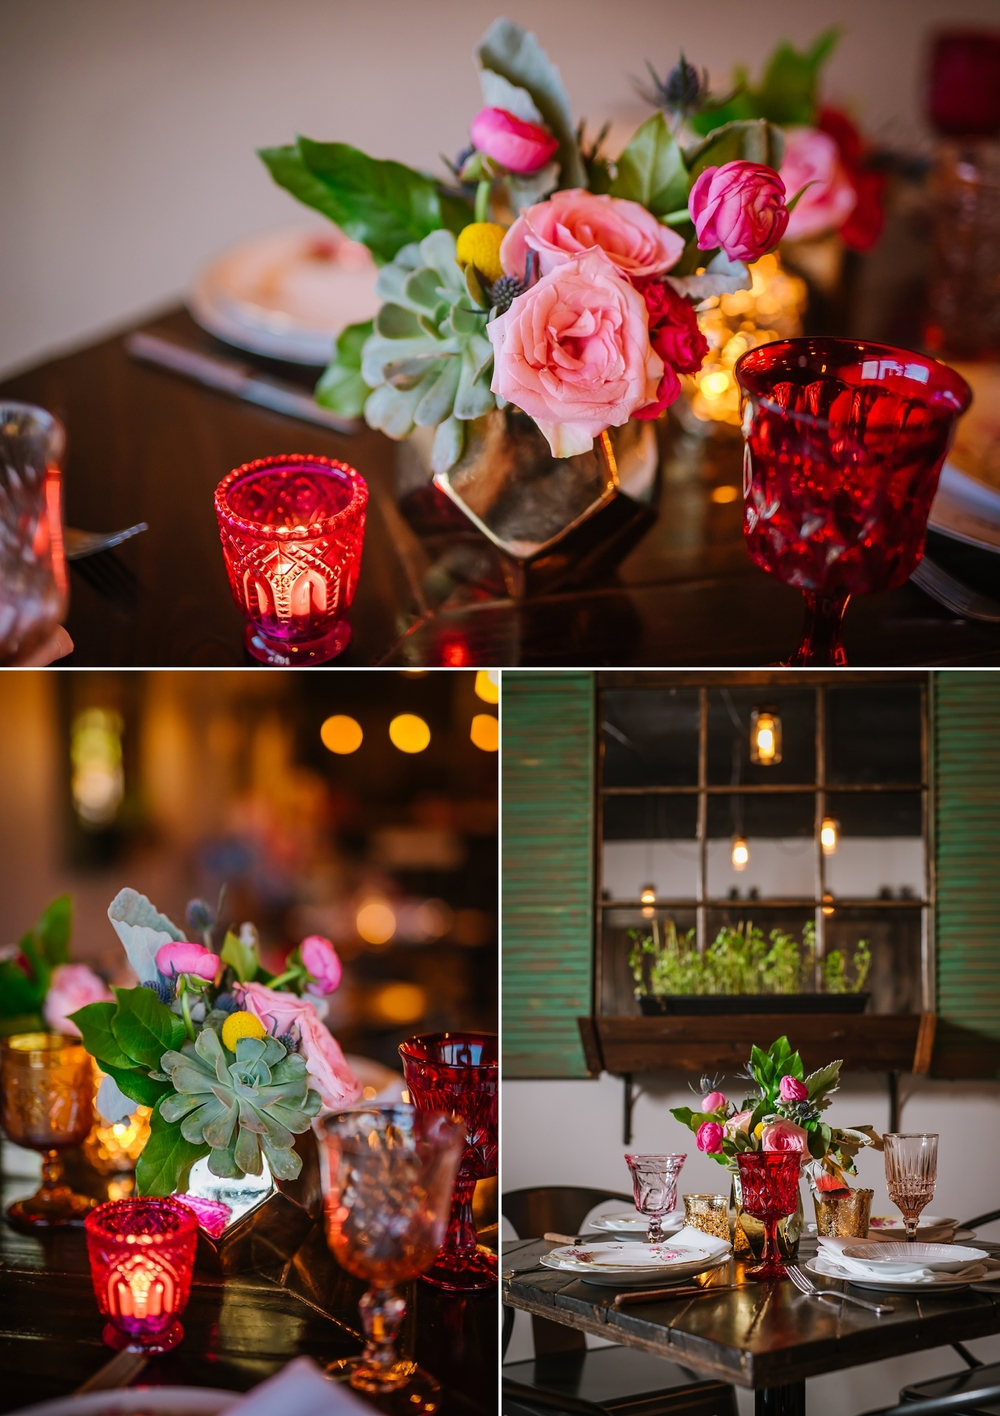 tampa-event-photographer-styled-party-ideas-oh-hello_0001.jpg